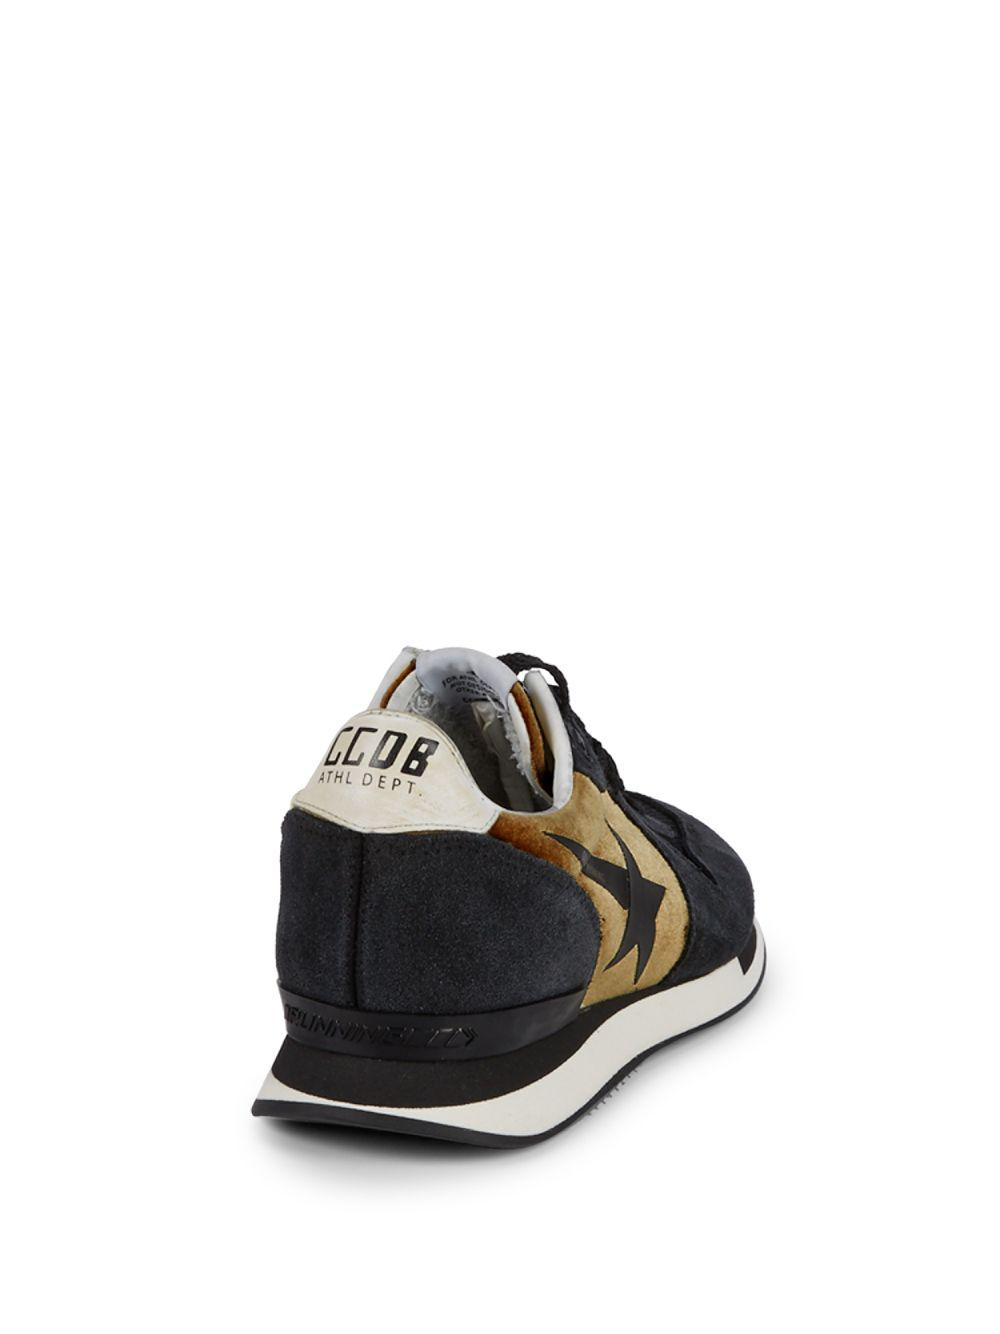 527ca67209a8a Lyst - Golden Goose Deluxe Brand Trainer Logo Sneakers in Black for Men